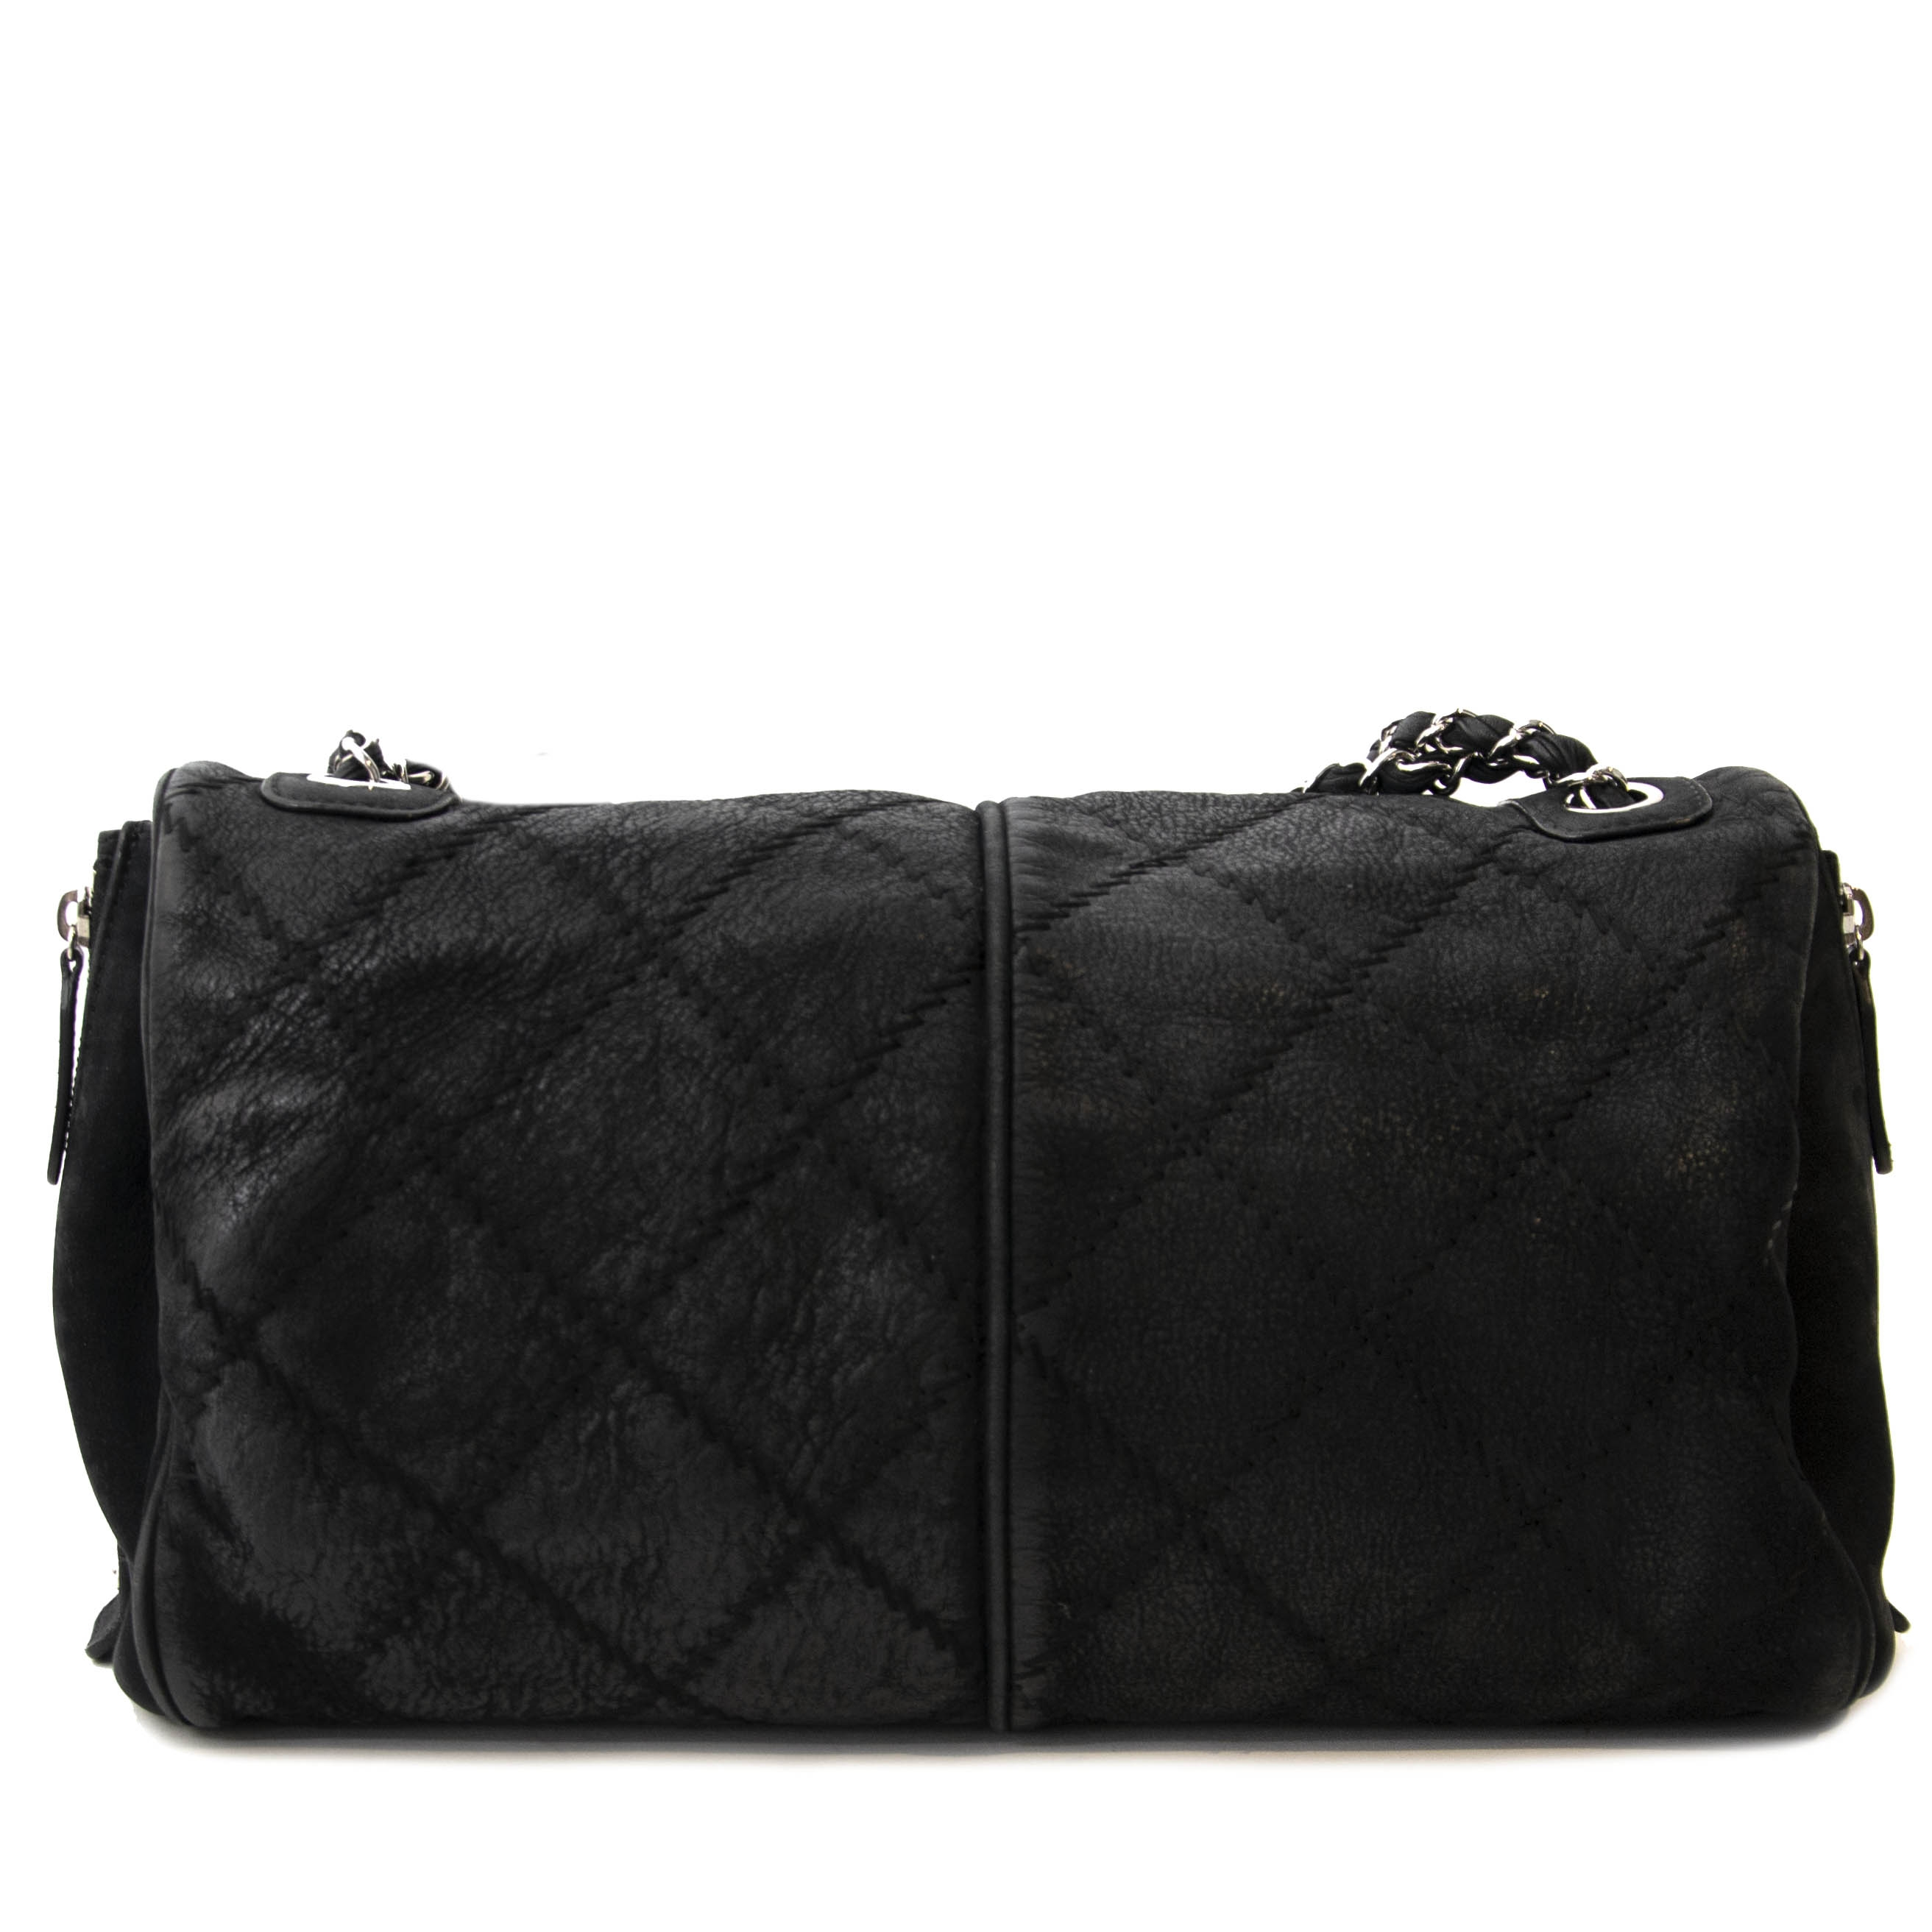 aa285c7a2ea3 ... achetez Chanel Black Quilted Leather Ultimate Stitch Flap Bag chez  labellov pour le meilleur prix